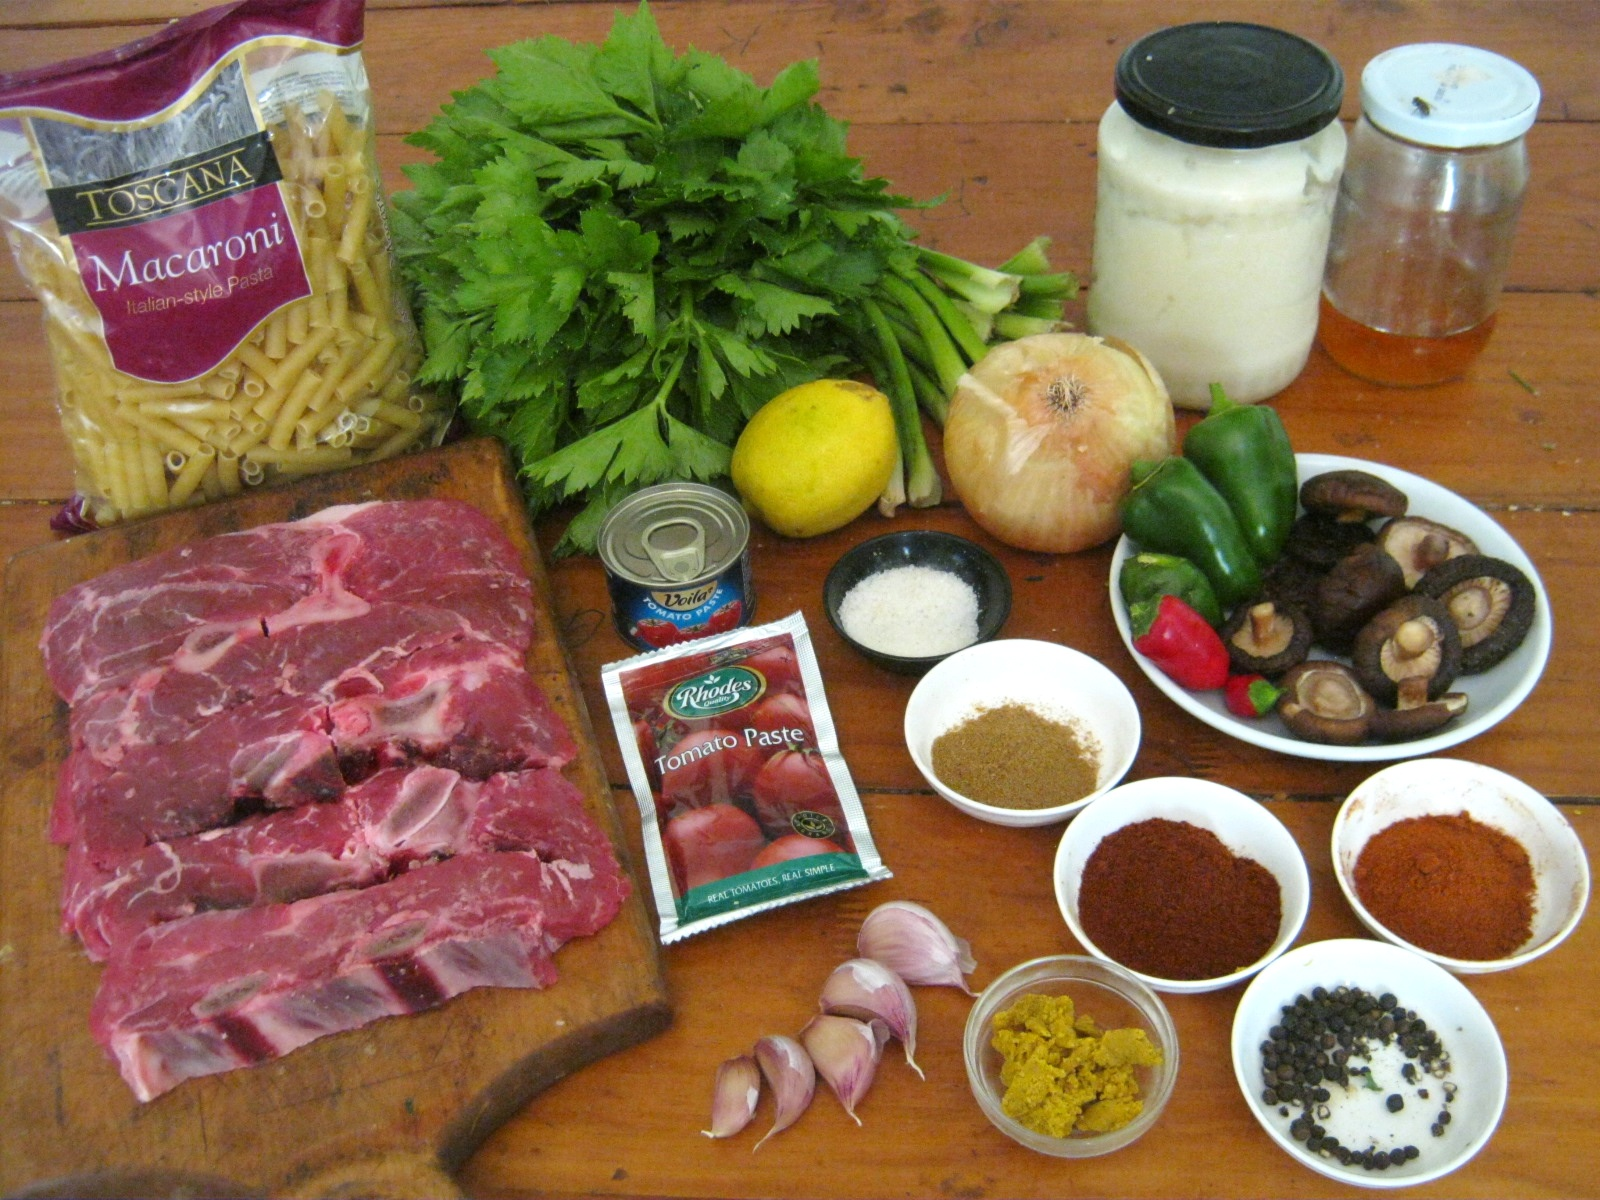 Ingredients for a Hungarian beef goulash / pörkölt recipe